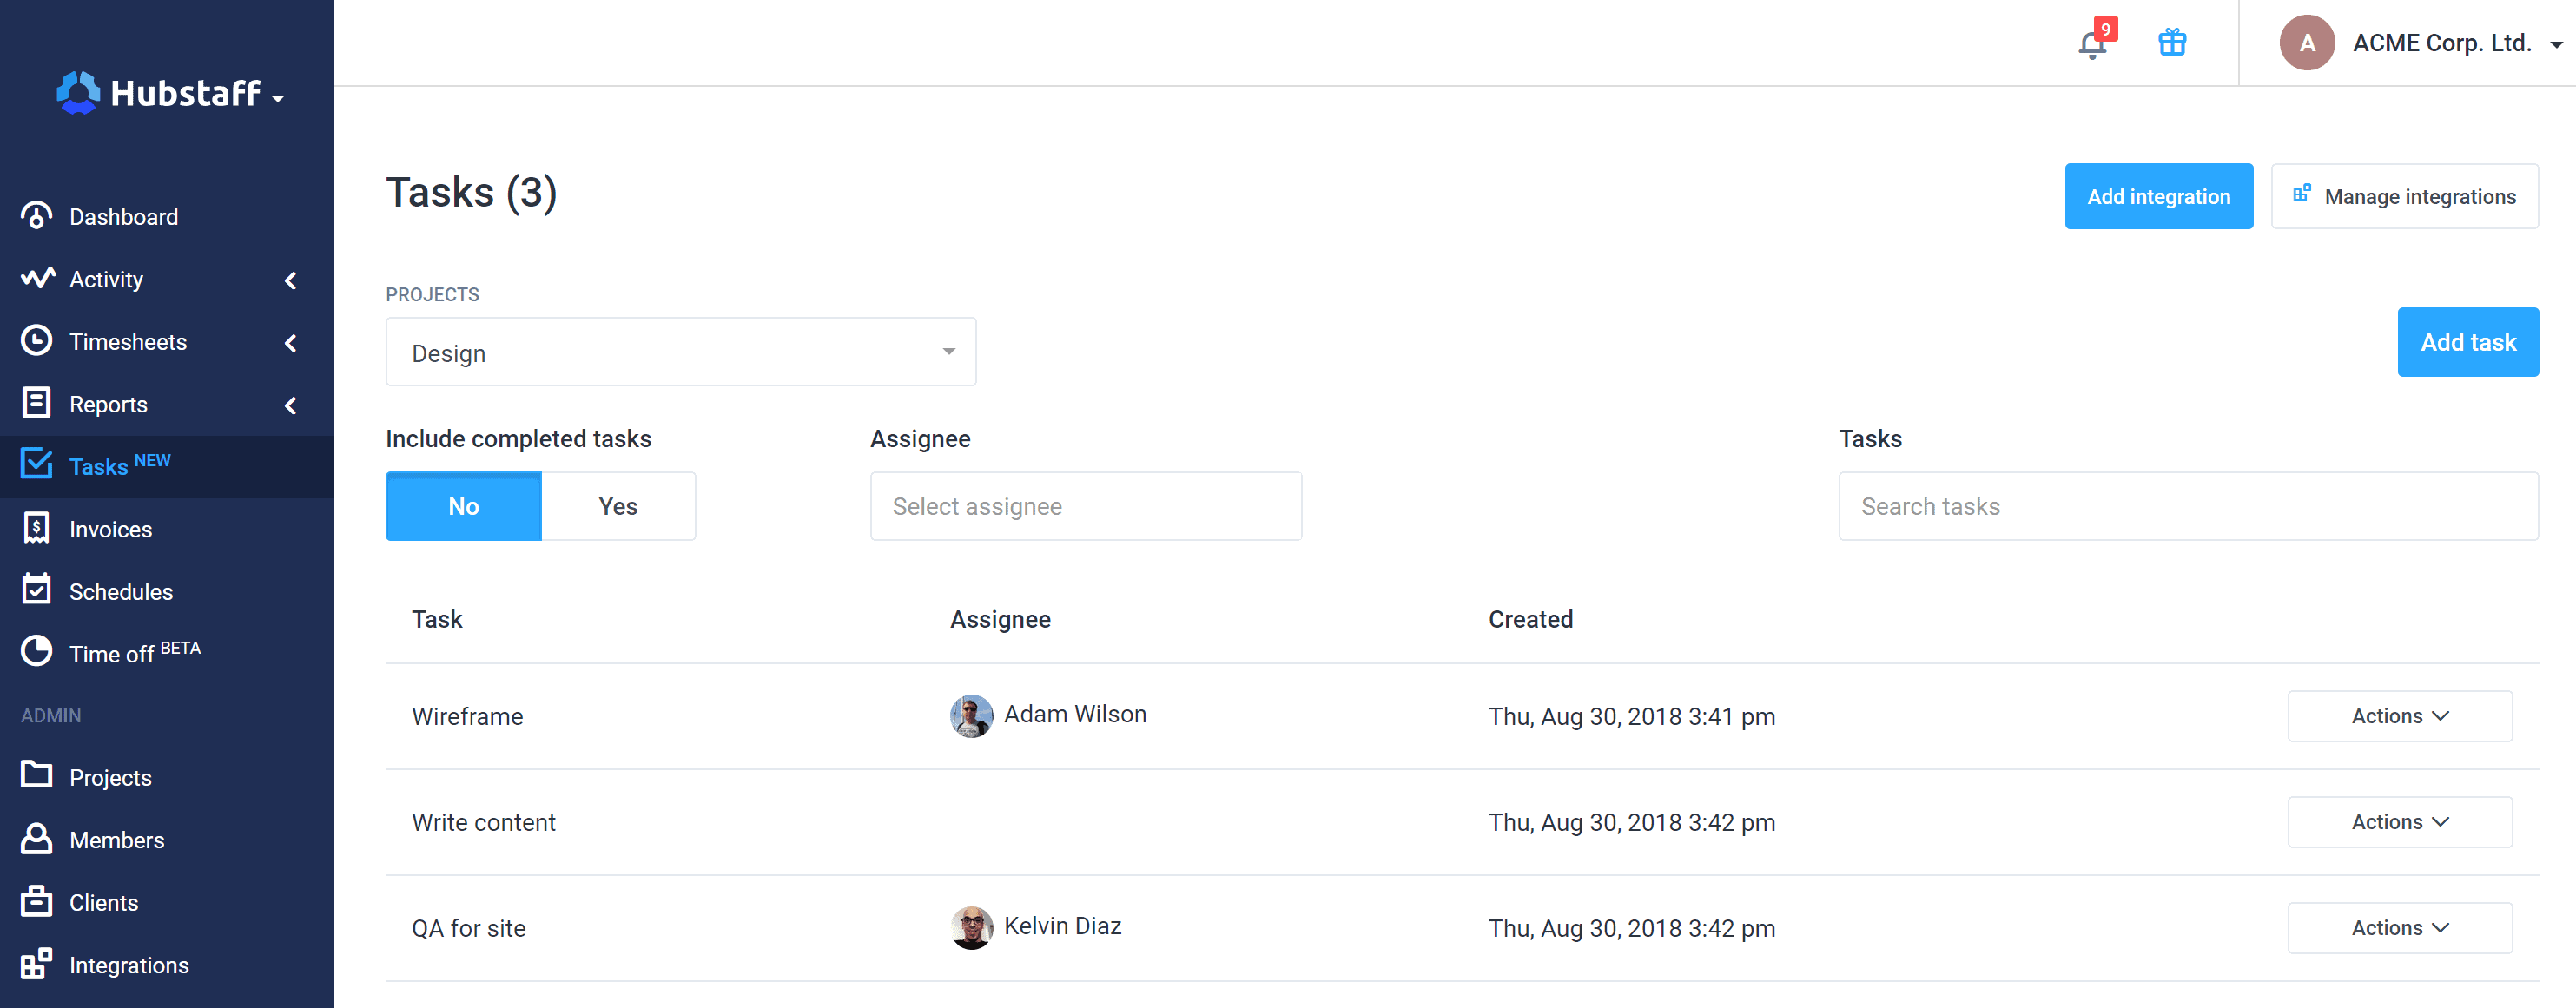 tasks page in hubstaff web app